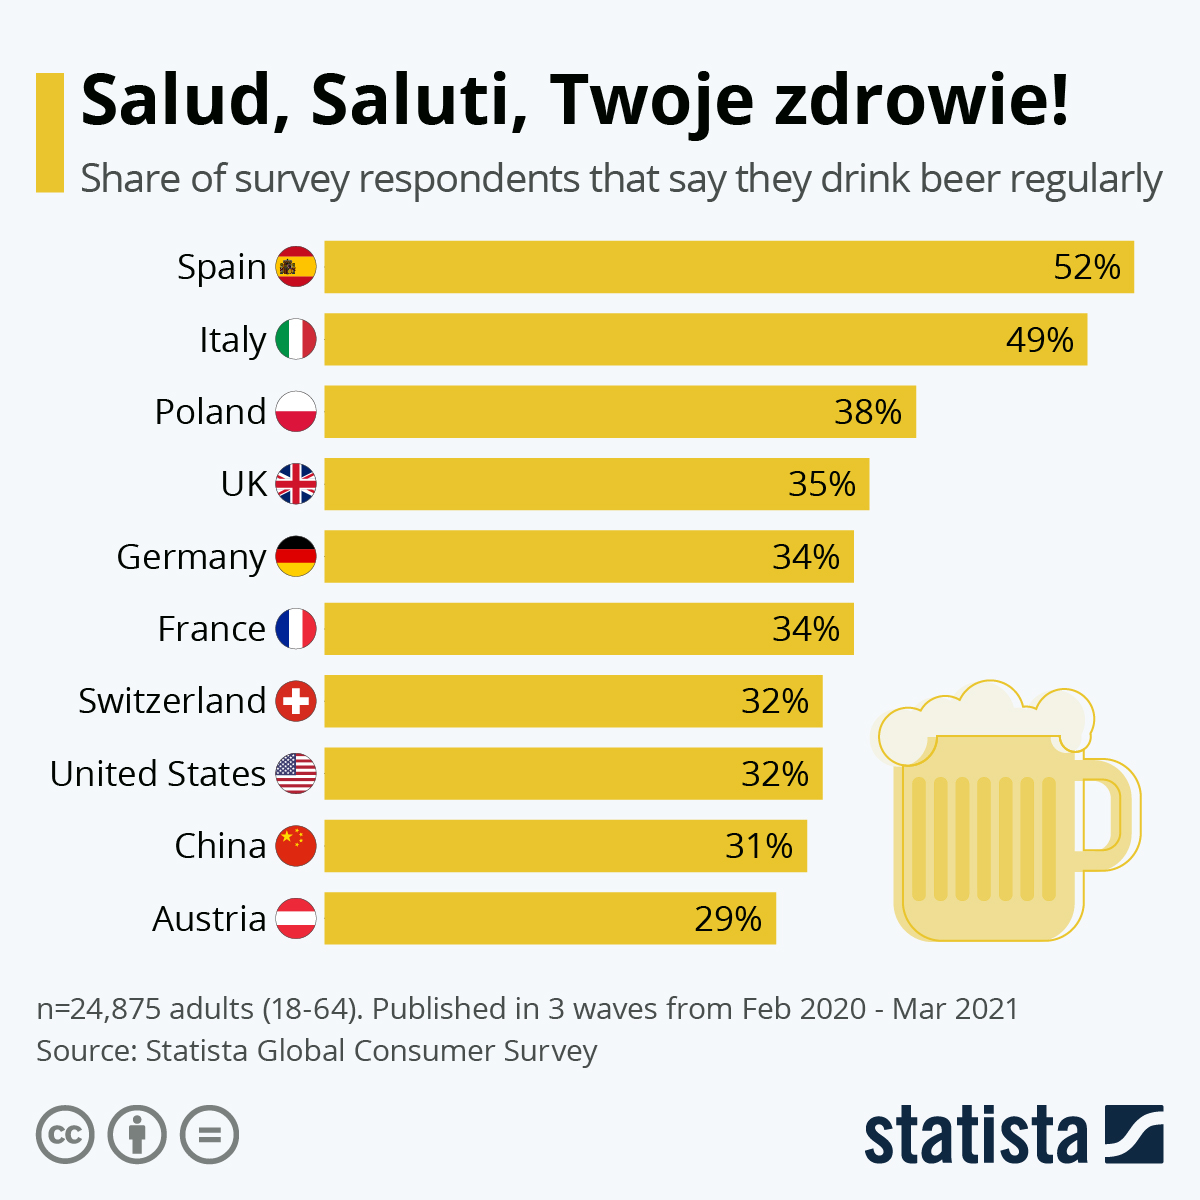 Which country drinks the more beer regularly?